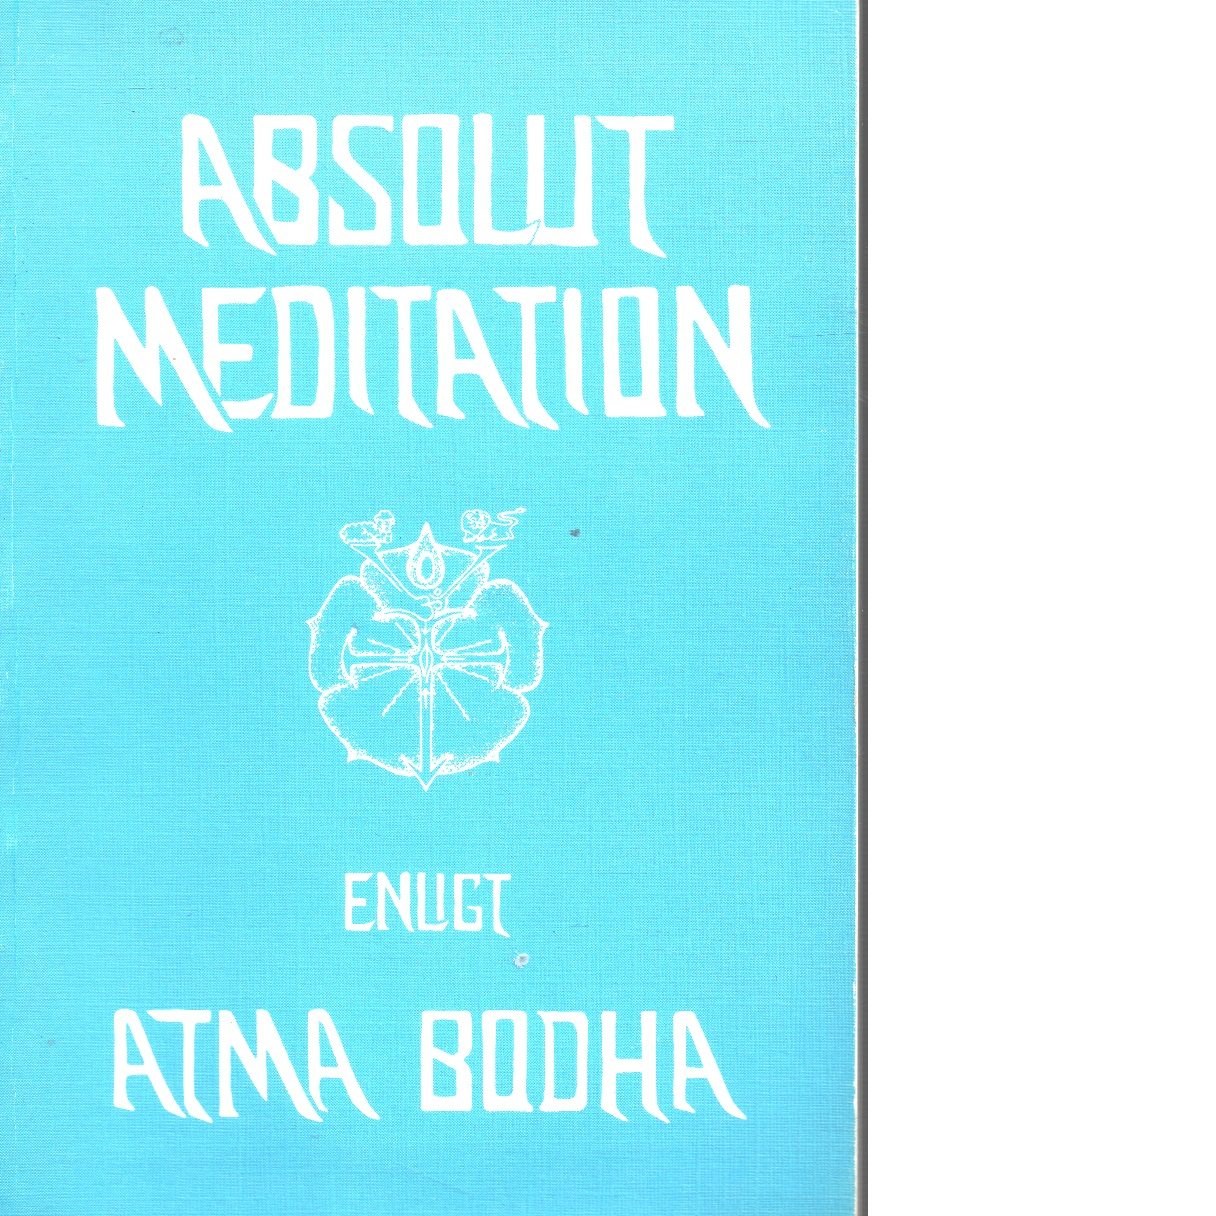 Absolut meditation enligt Atma Bodha - S?an?kara?ca?rya